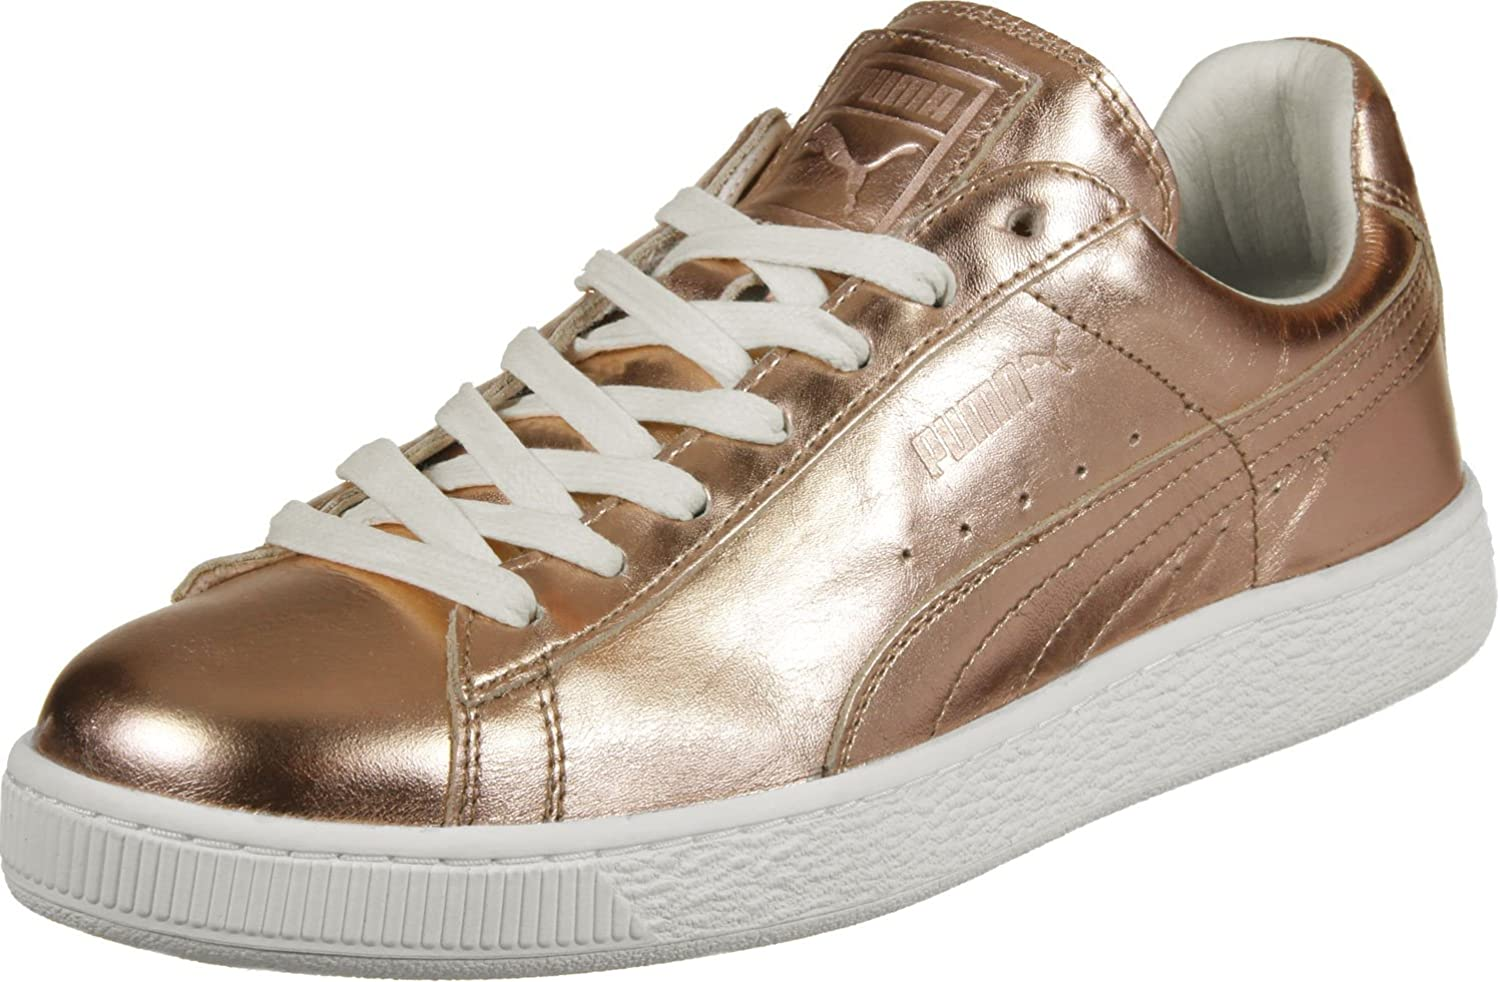 Puma Basket Creepers W chaussures 6,5 porcelain rose